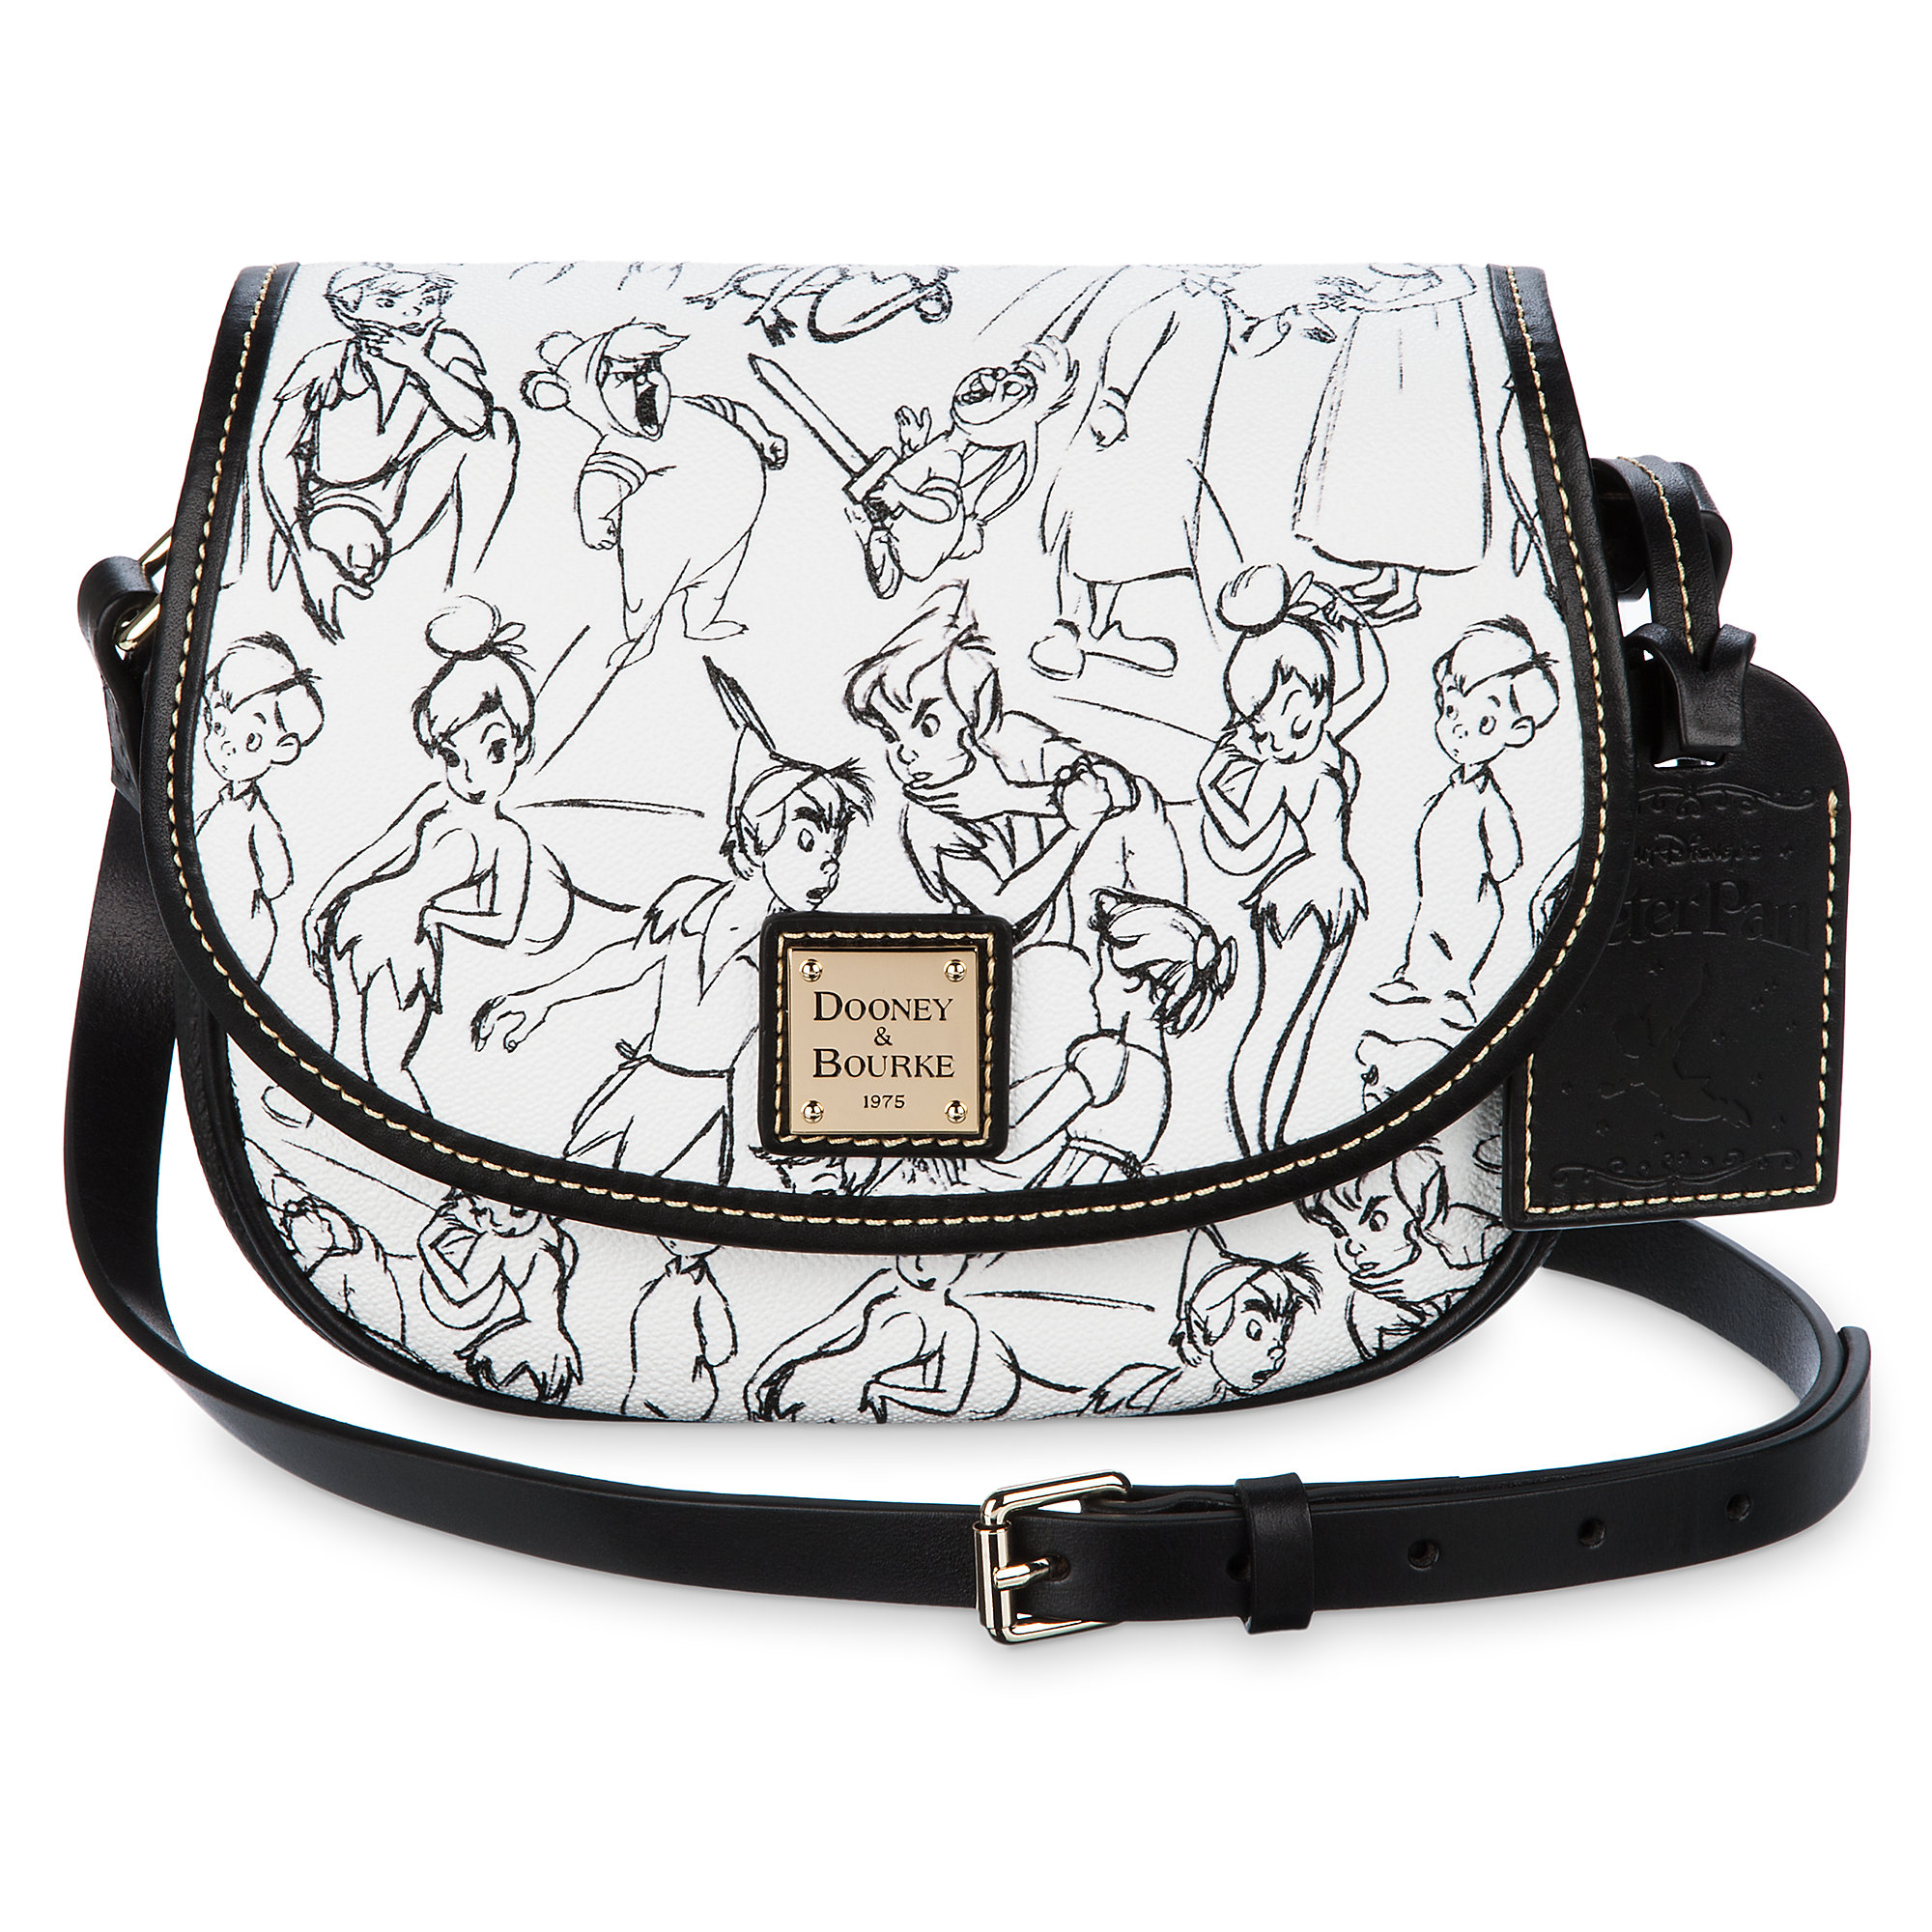 Peter Pan Hallie Crossbody Bag - Dooney & Bourke